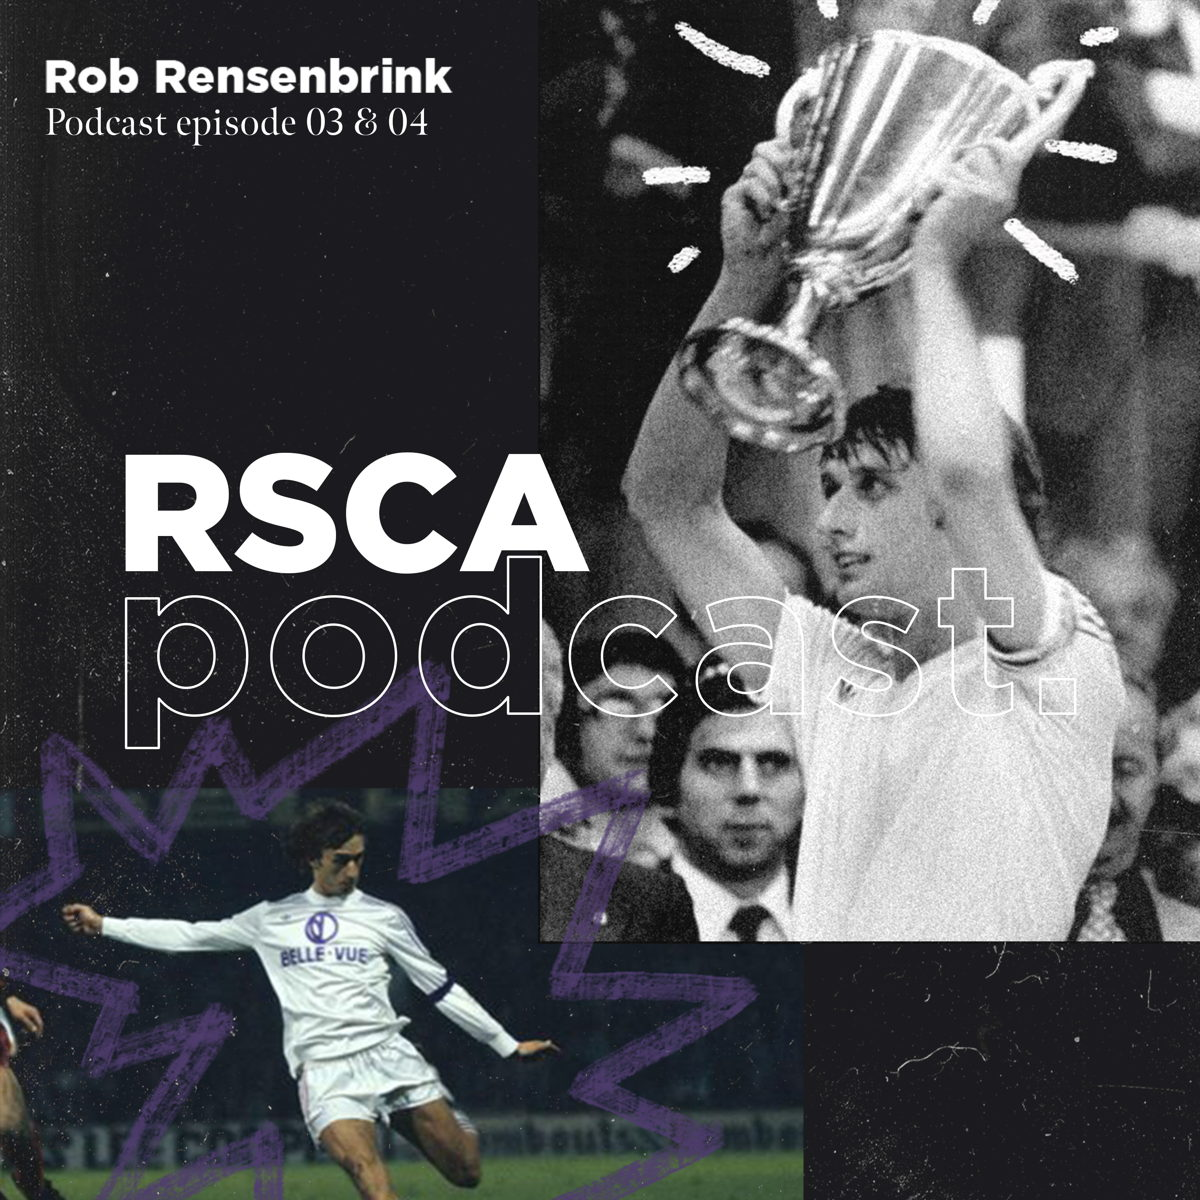 www.rsca.be/podcast